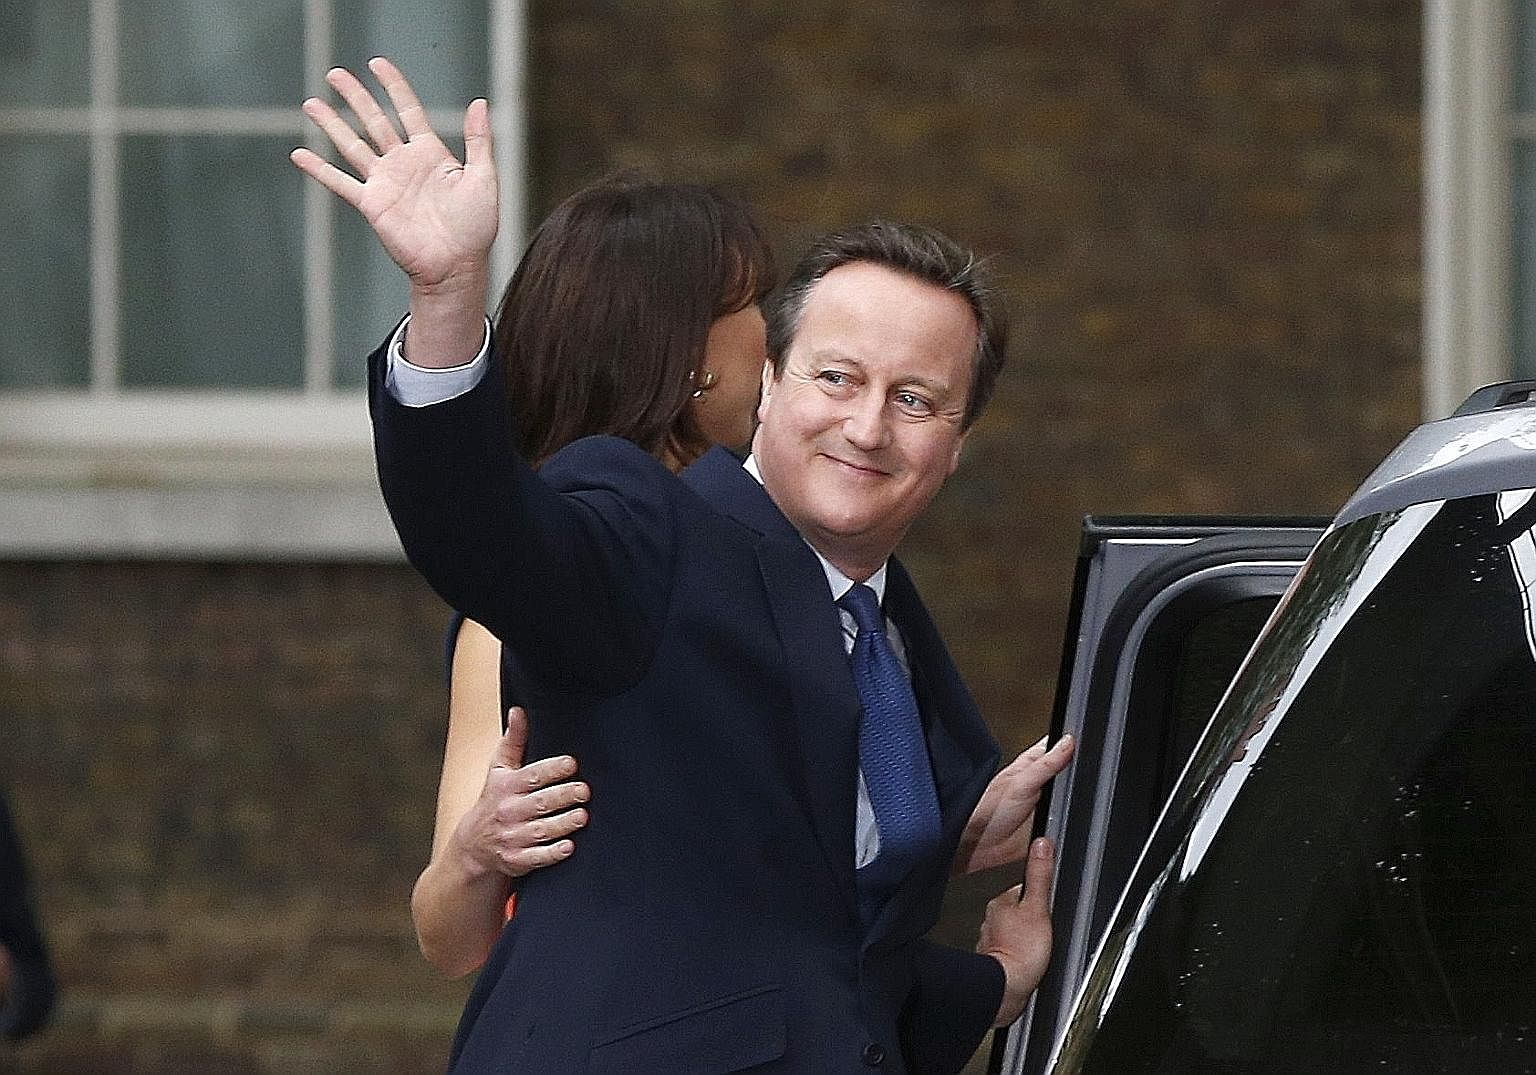 Mr David Cameron and his wife Samantha in front of No. 10 Downing Street on July 13, his last day in office as prime minister. He resigned as PM shortly after his defeat in the June 23 referendum in which Britain voted to leave the European Union.